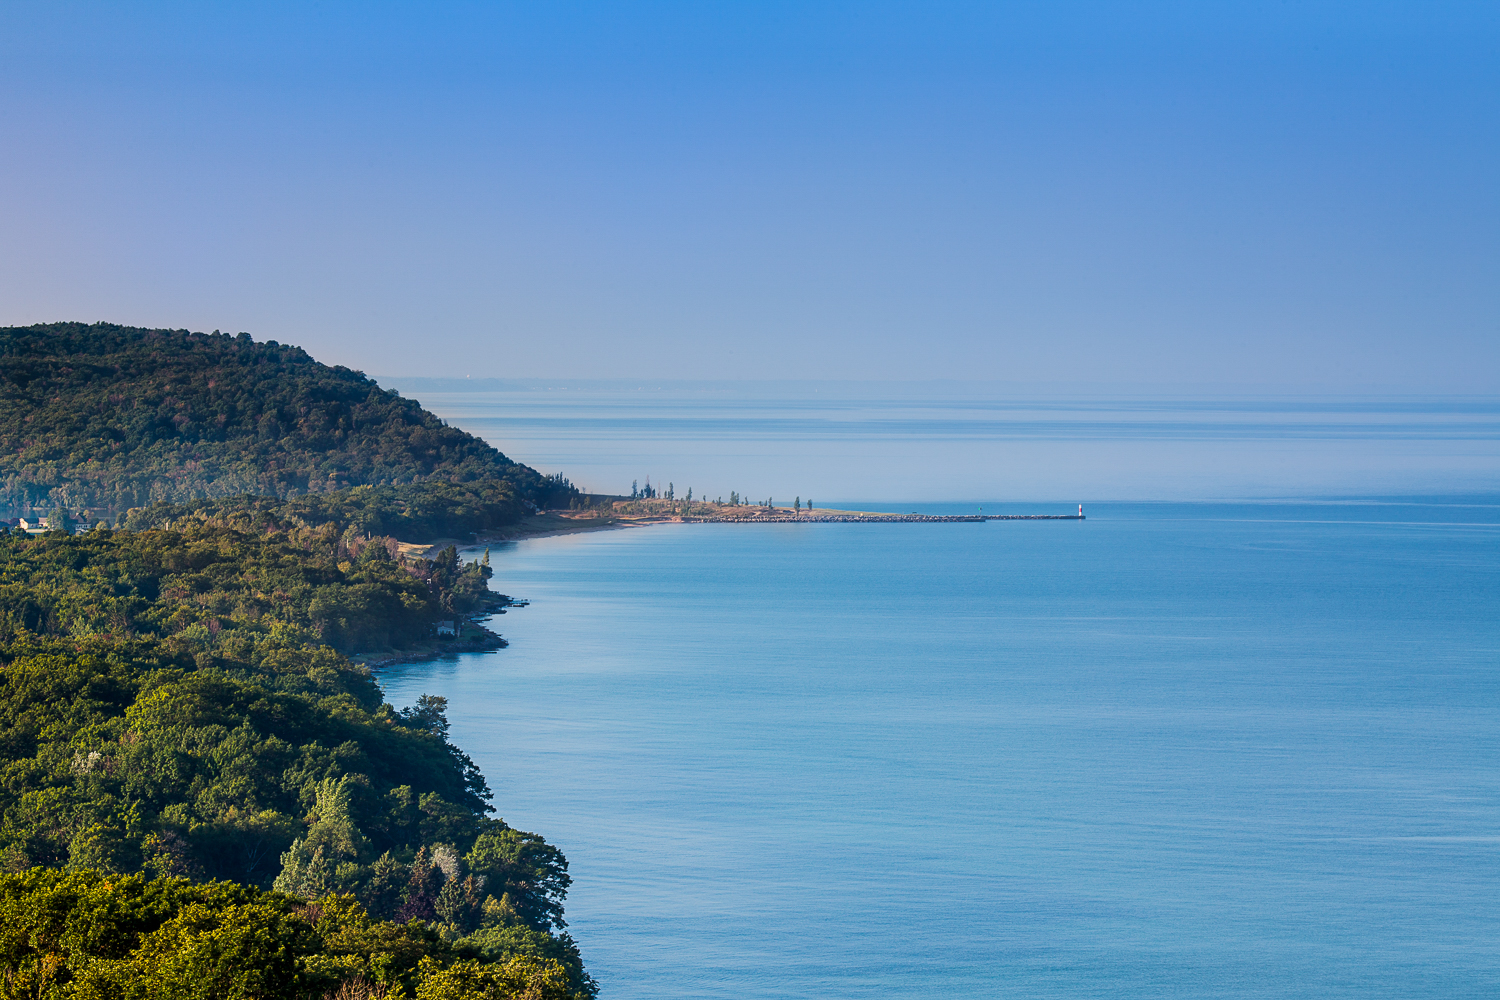 Photo © Drew Smith View of the Lake Michigan Shoreline and Arcadia from the Inspiration Point Overlook on M22.  This is a favorite...